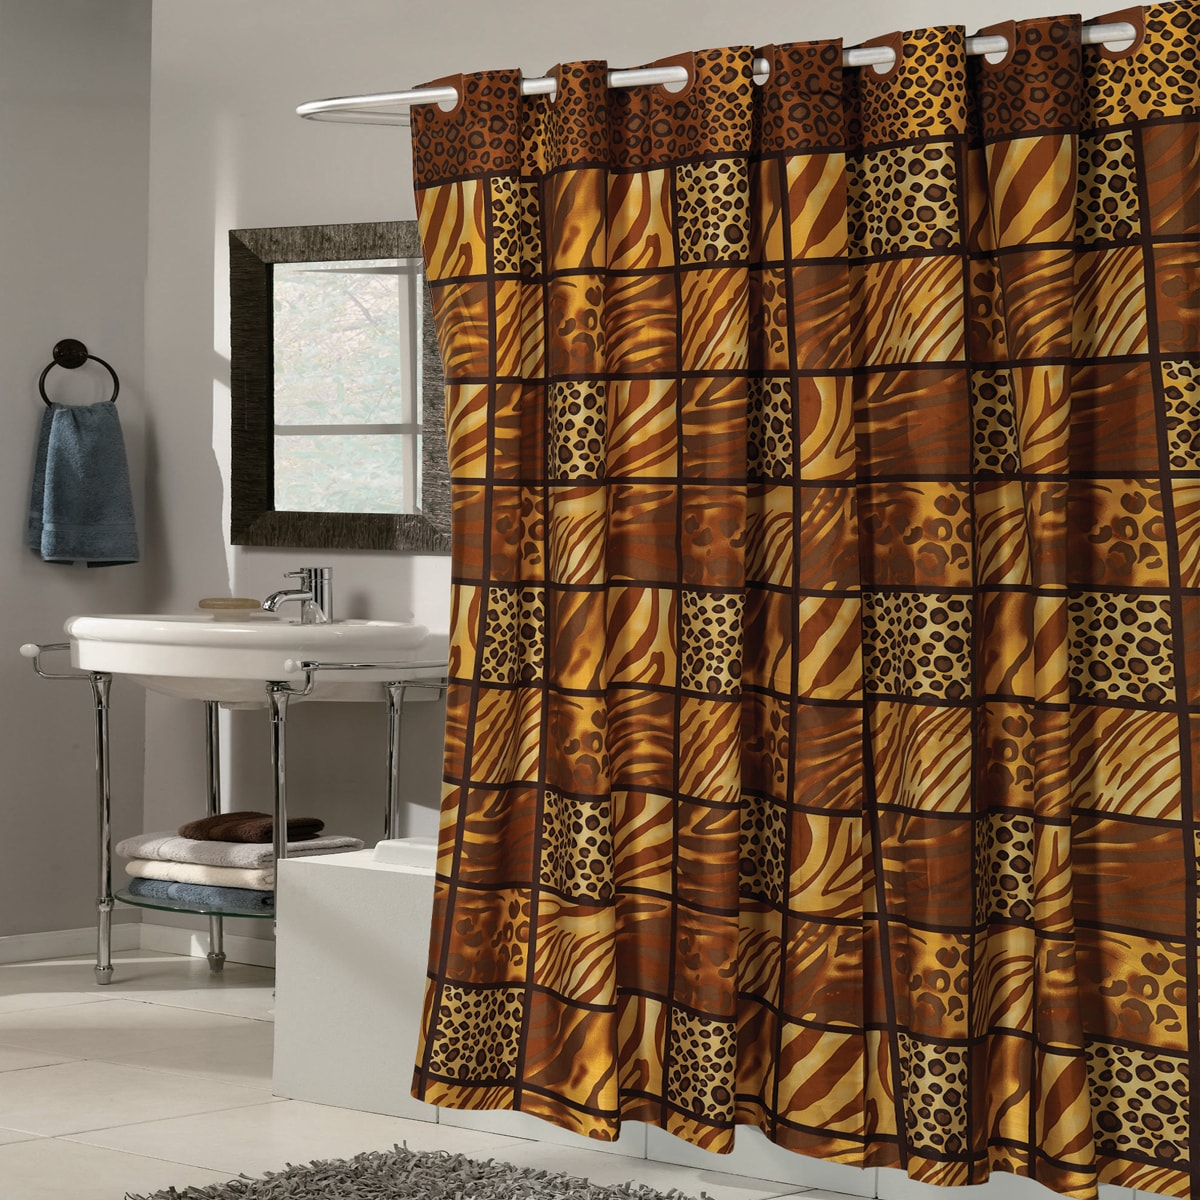 EZ On Wild Animal Print Fabric With Built in Hooks Shower...